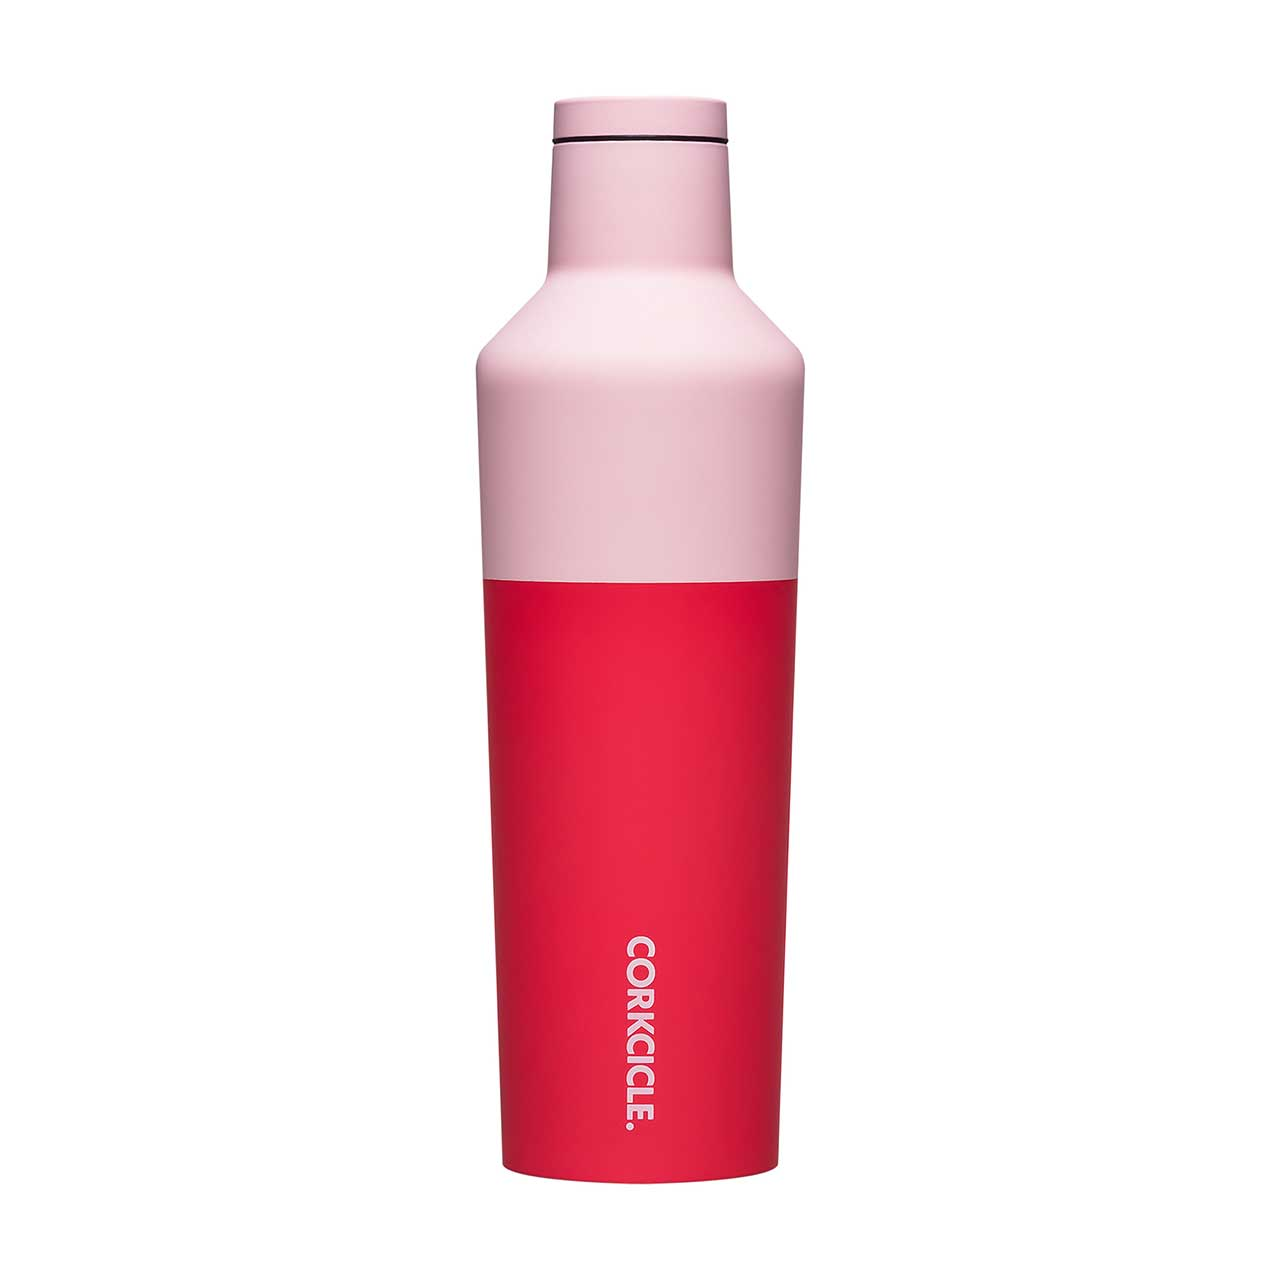 CORKCICLE. Láhev Canteen Color Block – Shortcake – 475 ml